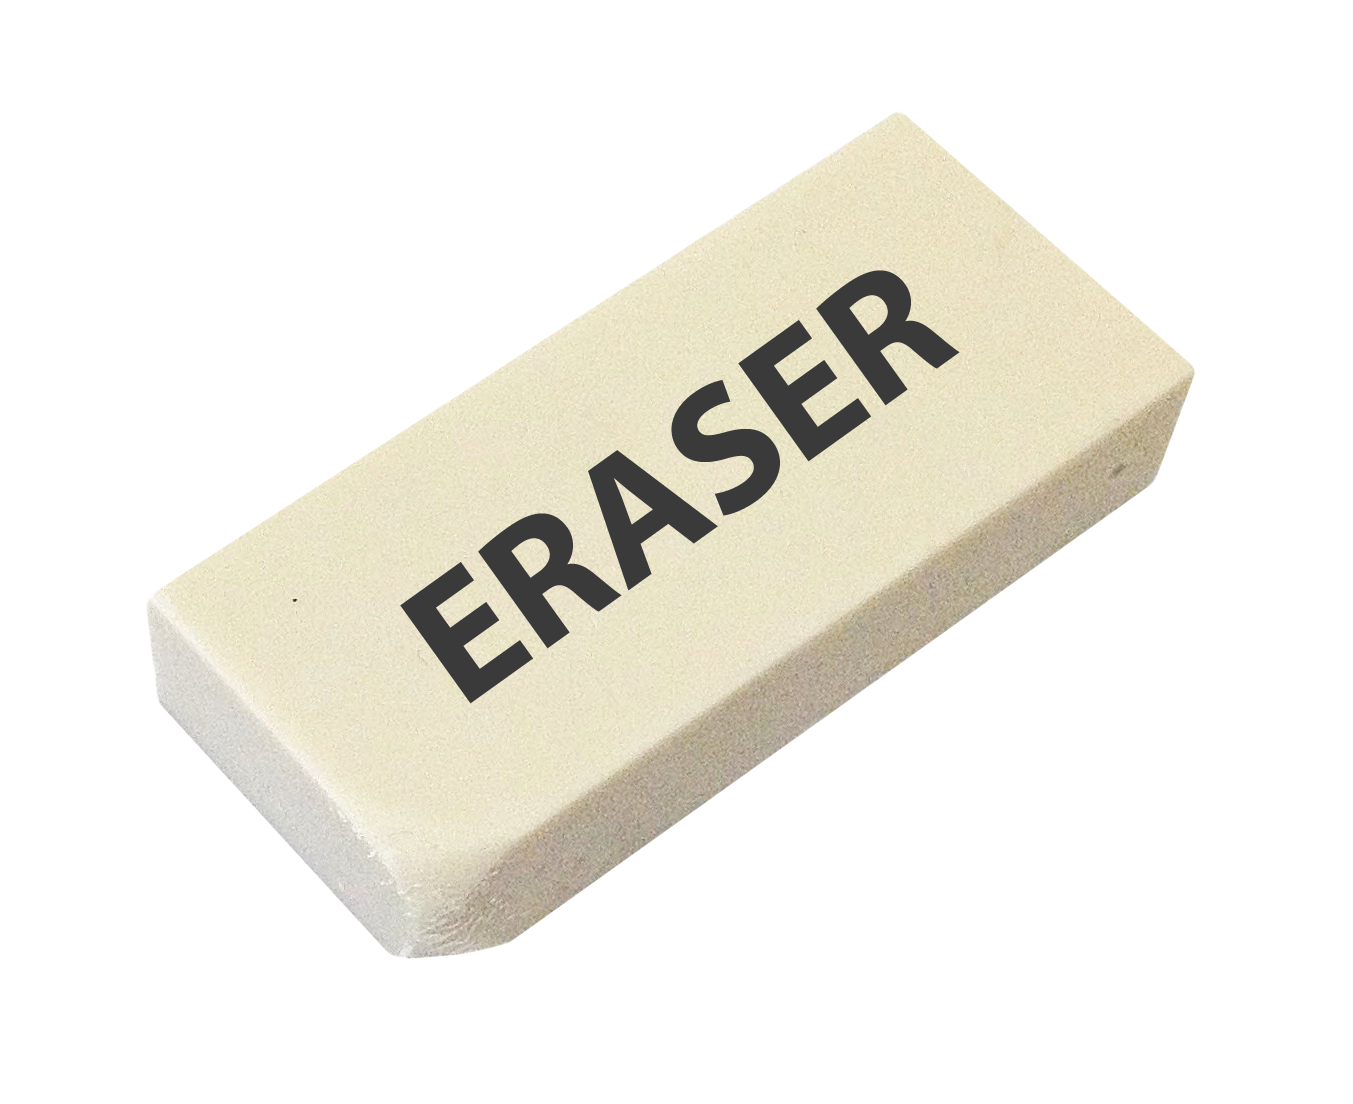 Eraser clipart rubber material. Png transparent images all